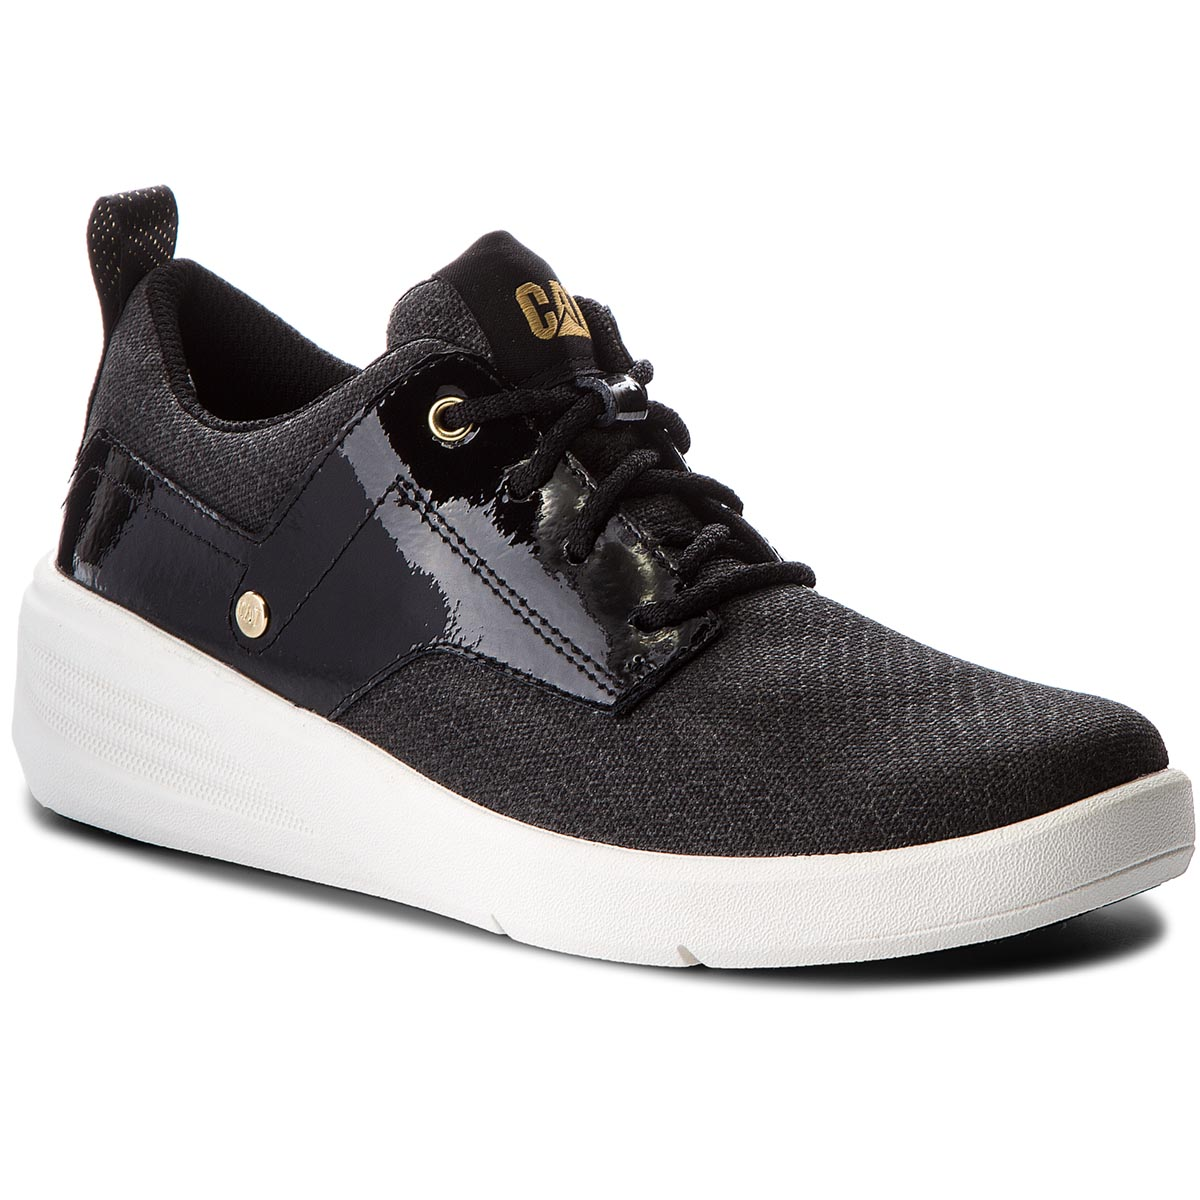 Sneakers CATERPILLAR - Glint Canvas P310308 Black